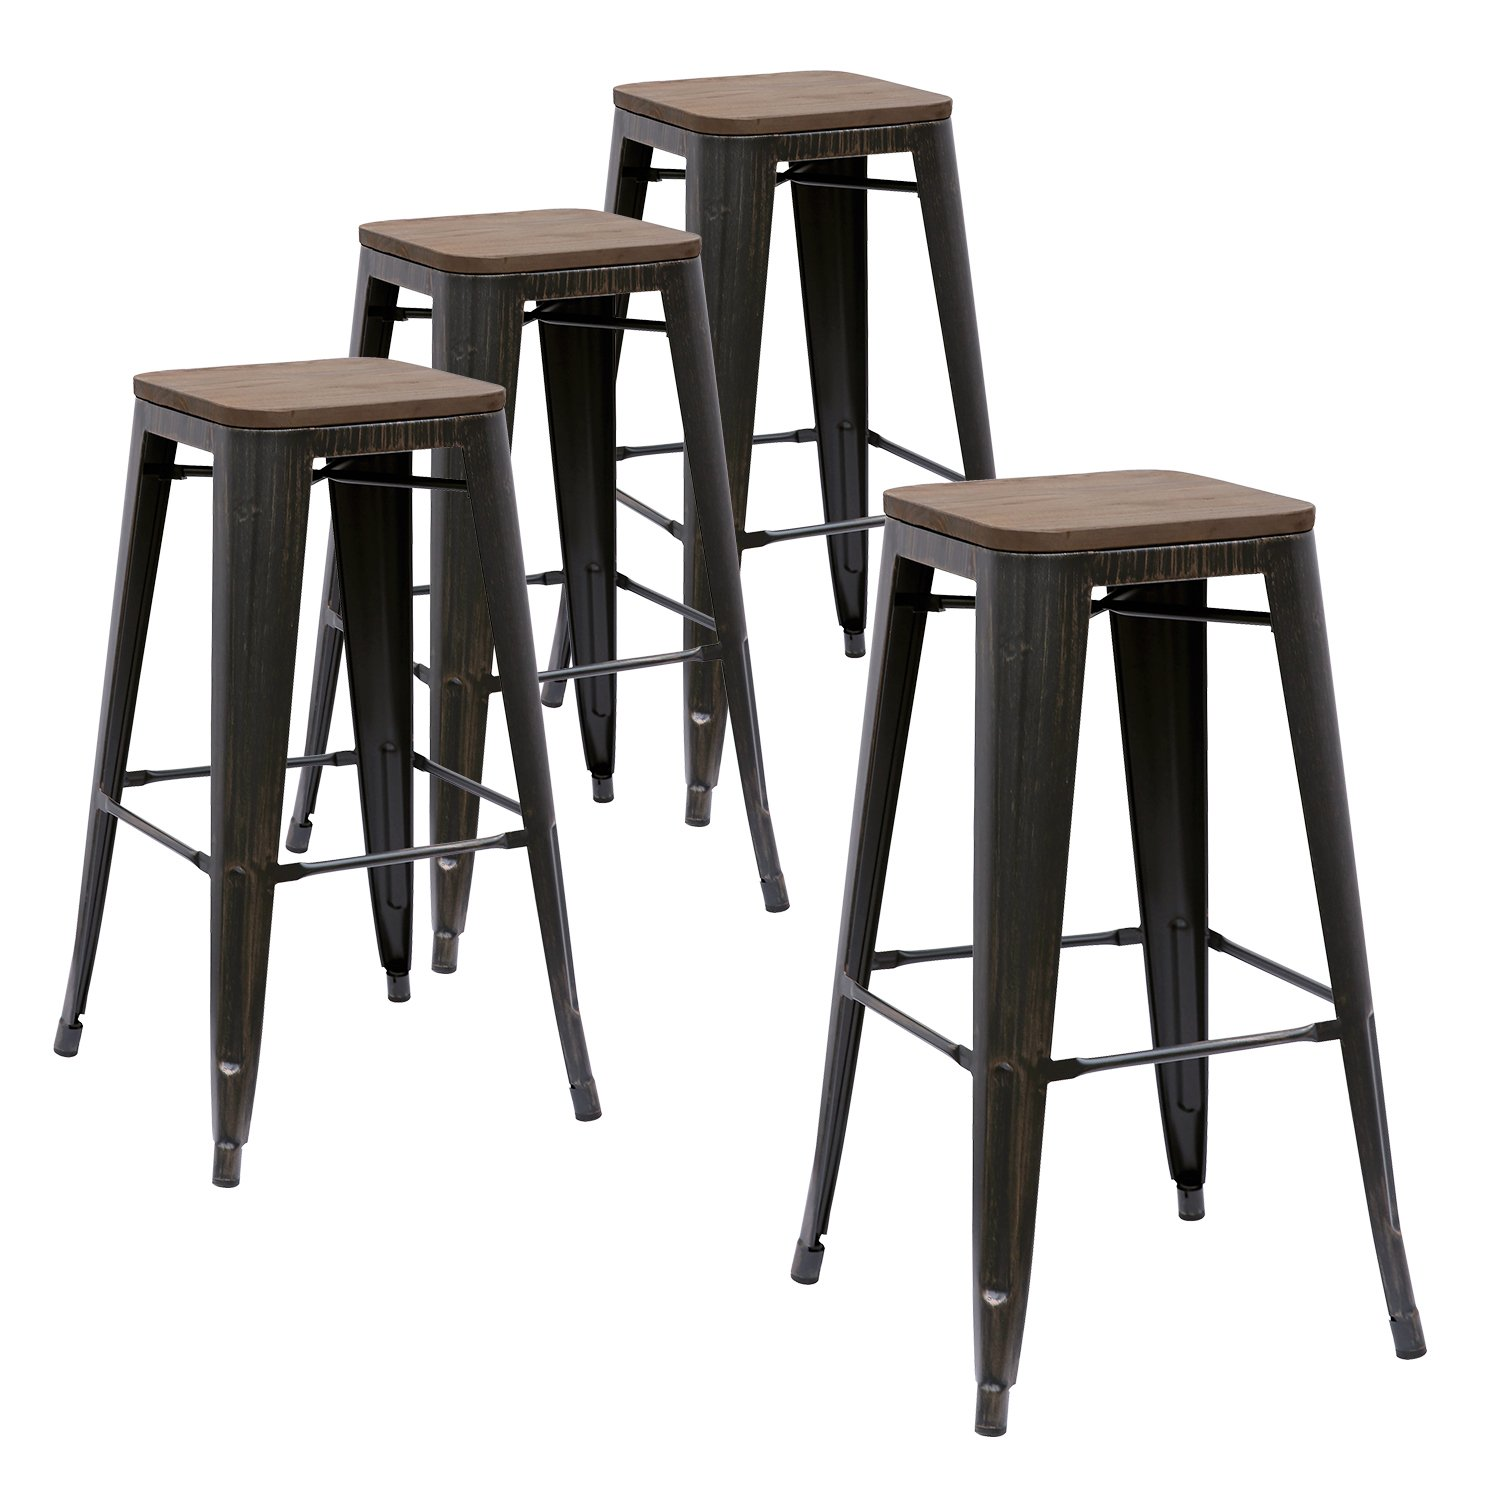 LCH 30'' Metal, Kitchen Stackable Modern Dining Chairs with Square Elm Wood Seat, 350LB Limit, Set of 4 Bar Stool, 30 Inch, Sanded Black by LCH